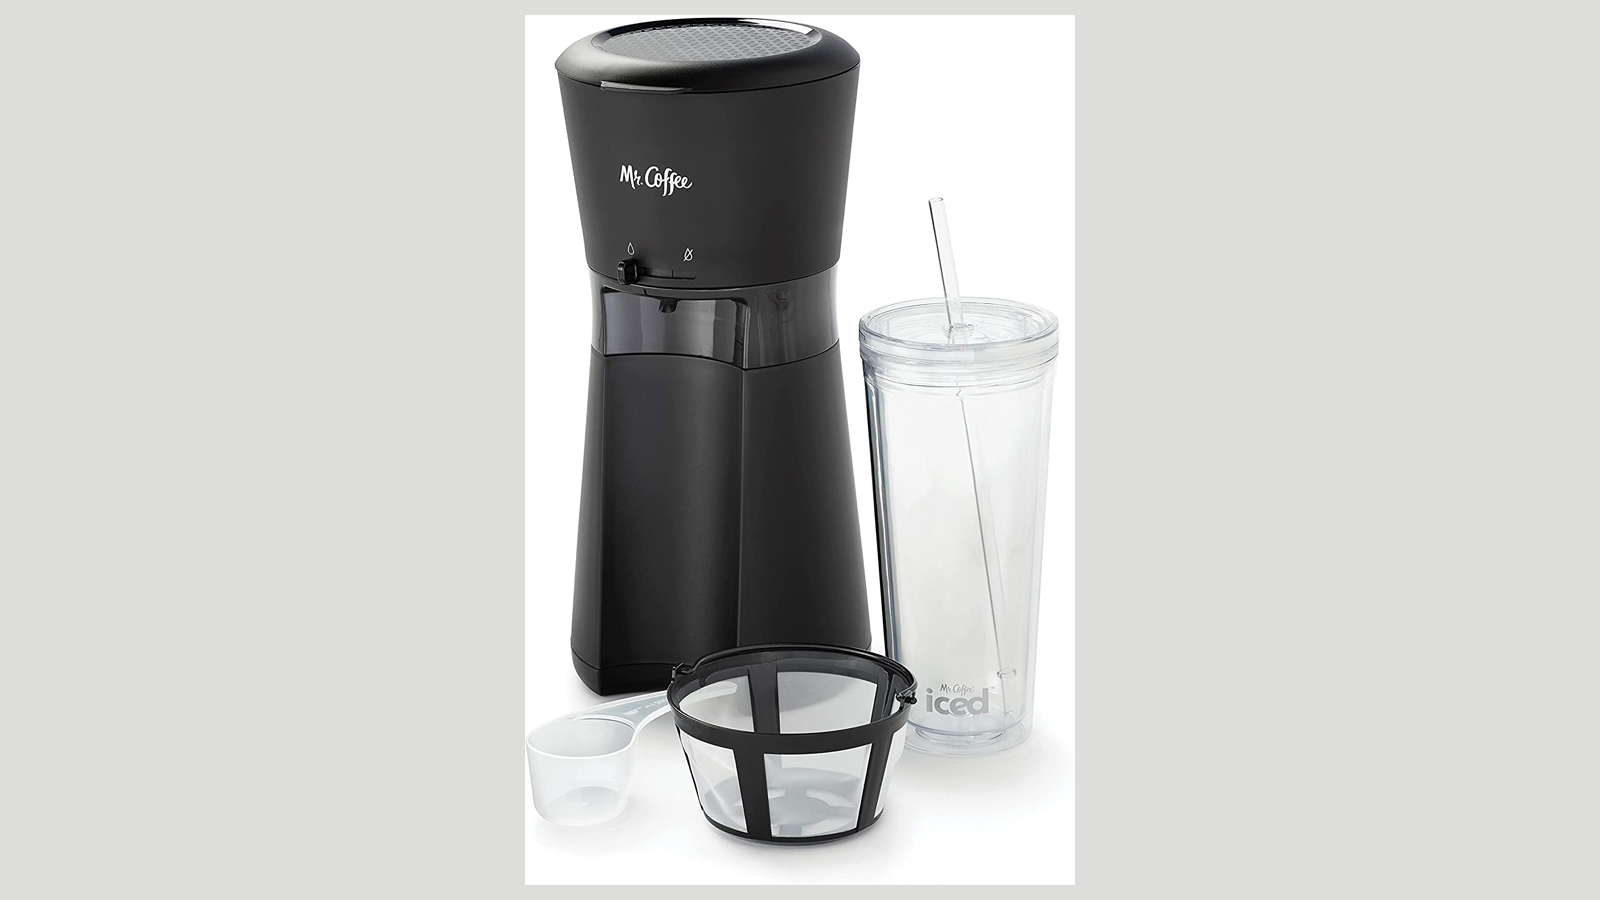 This Mr. Coffee Iced Coffee Maker Lets You Make Iced Coffee At Home